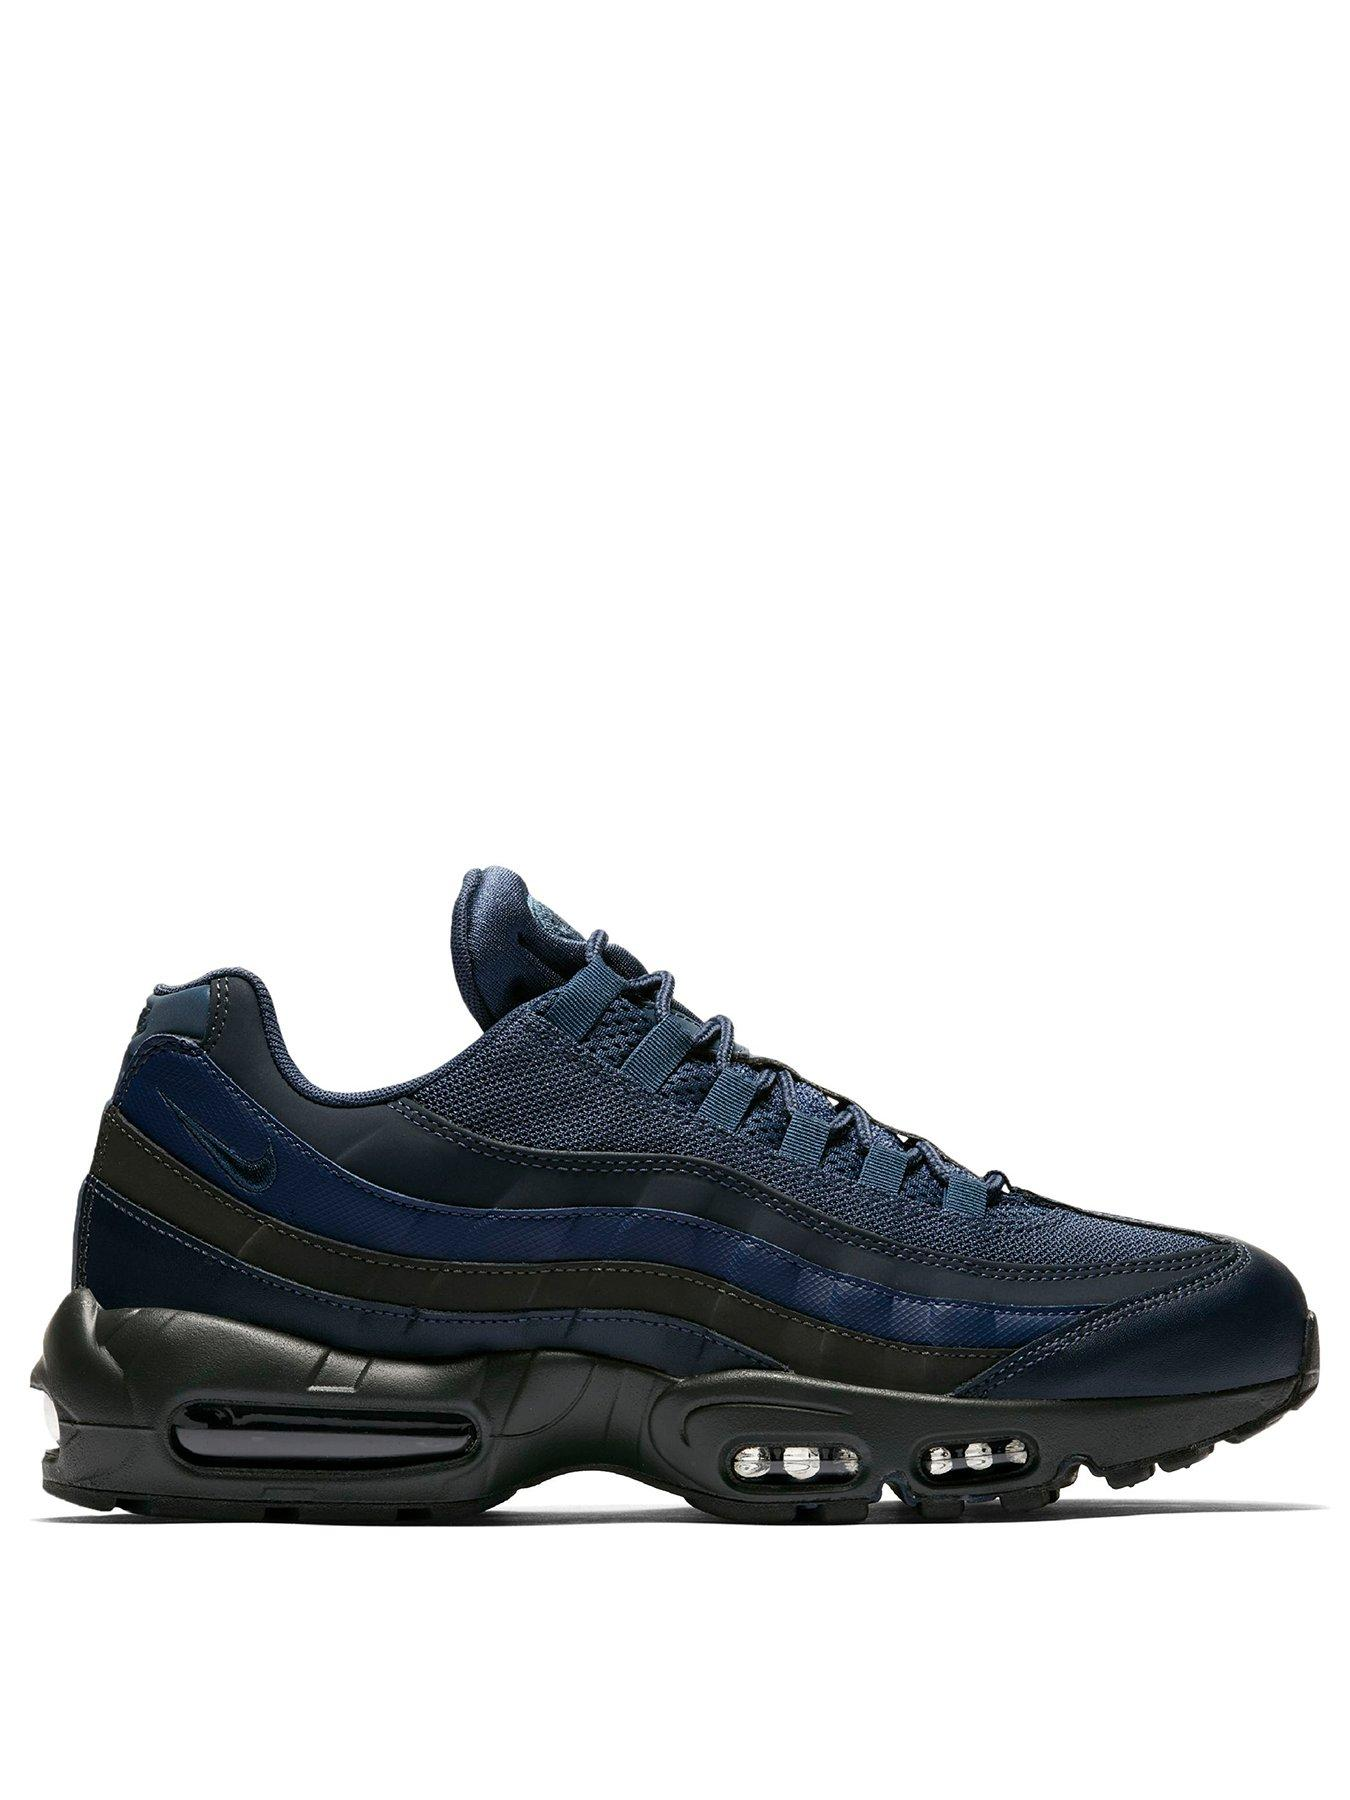 quality design c4bfe 24865 ... where to buy nike air max 95 essential c173a 2ada4 ...